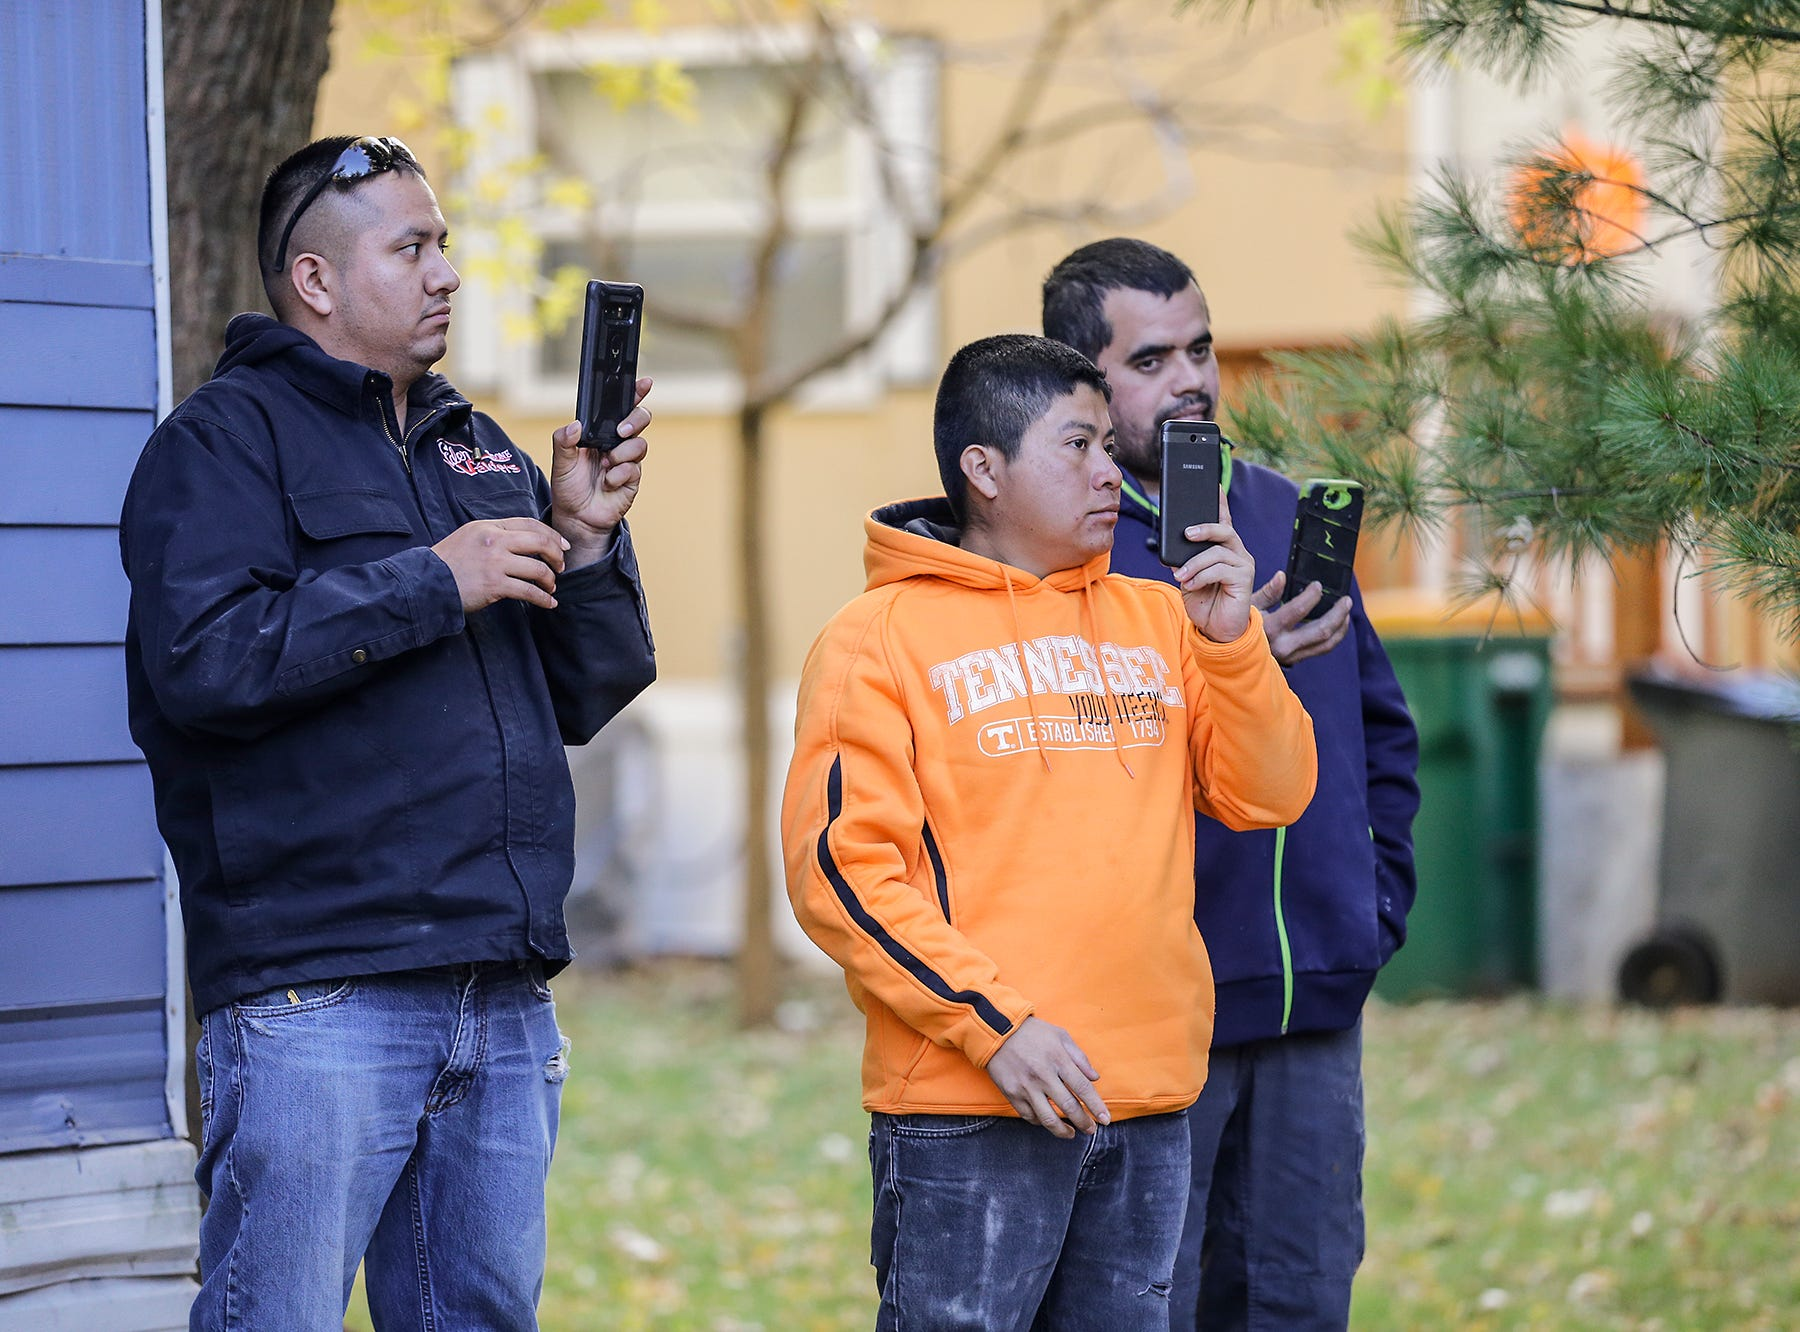 Bystanders film a mobile home fire Tuesday, October 23, 2018 at 21 Gaslight Drive in the Gaslight Terrace mobile home park in North Fond du Lac, Wisconsin. Fire departments from multiple agencies were on hand to battle the fire. Doug Raflik/USA TODAY NETWORK-Wisconsin